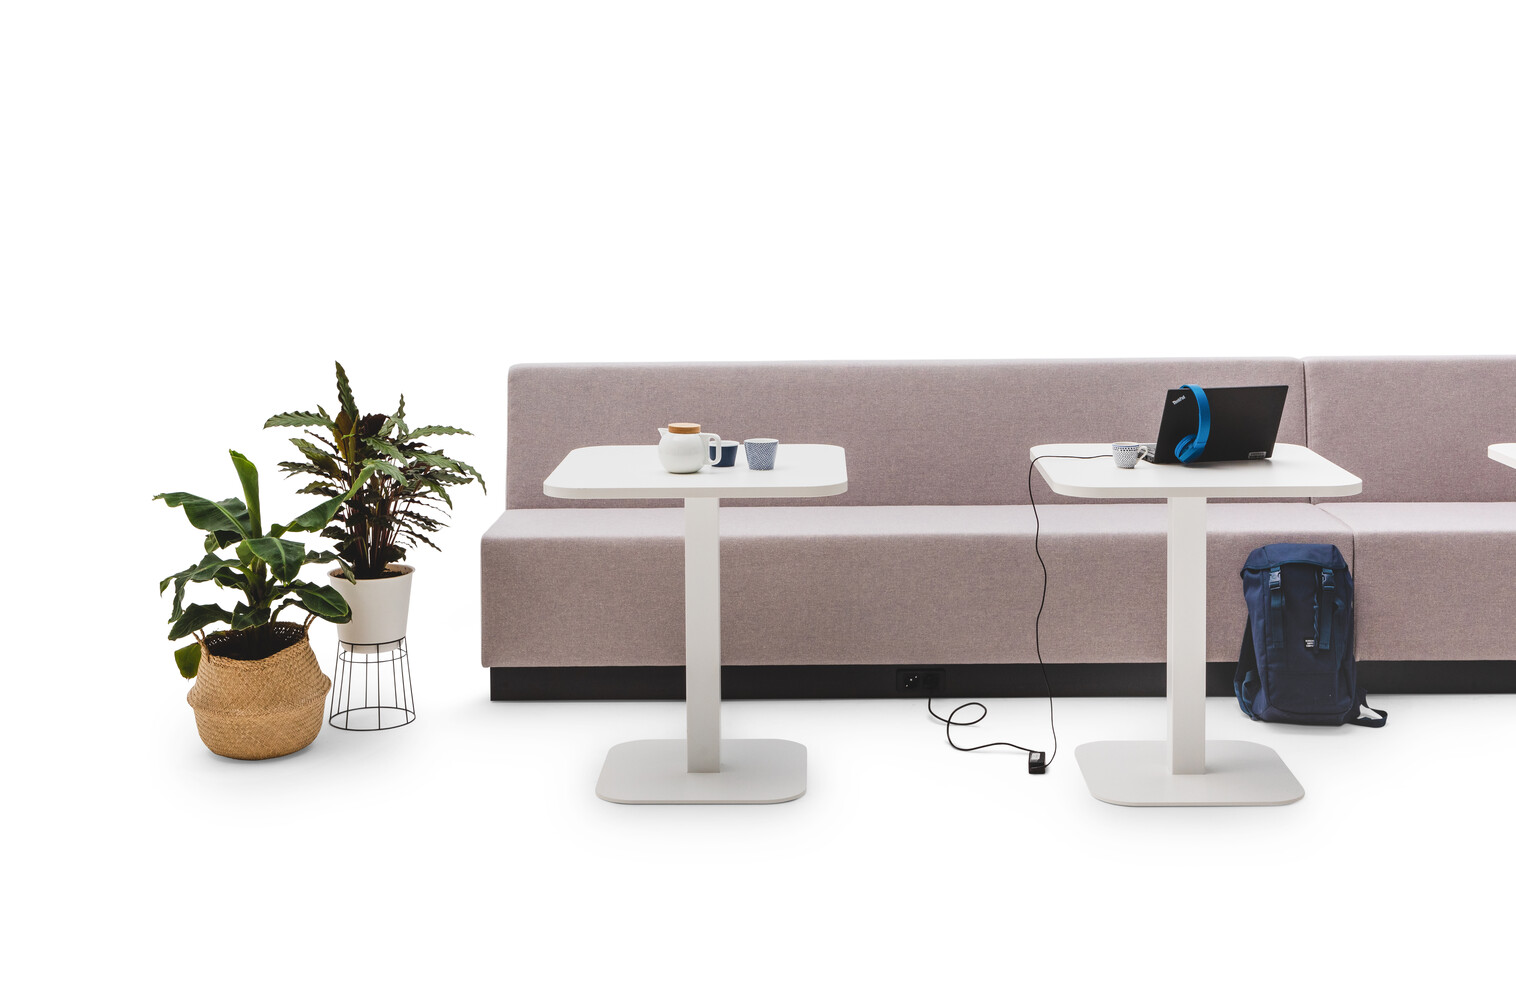 Gispen JUNA Single low trainbench upholstered in grey with 2 white KOLM column tables and styling front view